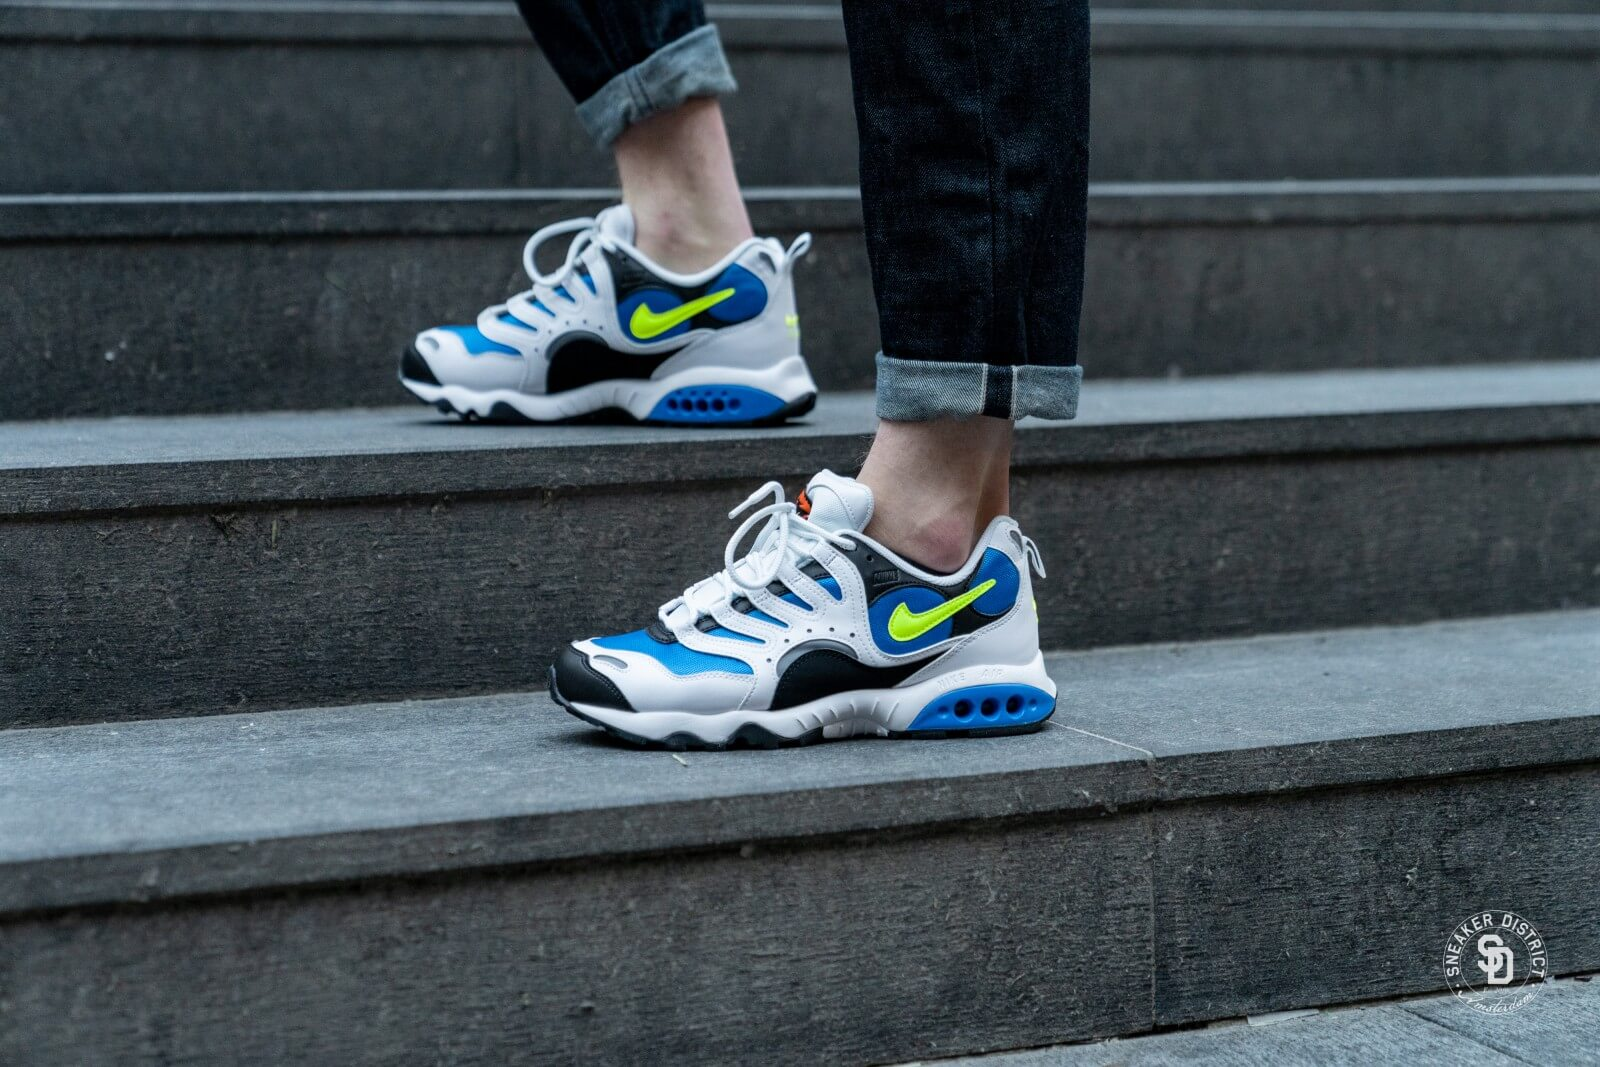 big sale well known website for discount Nike Air Terra Humara '18 White/Volt Photo Blue/Black - AO1545-100